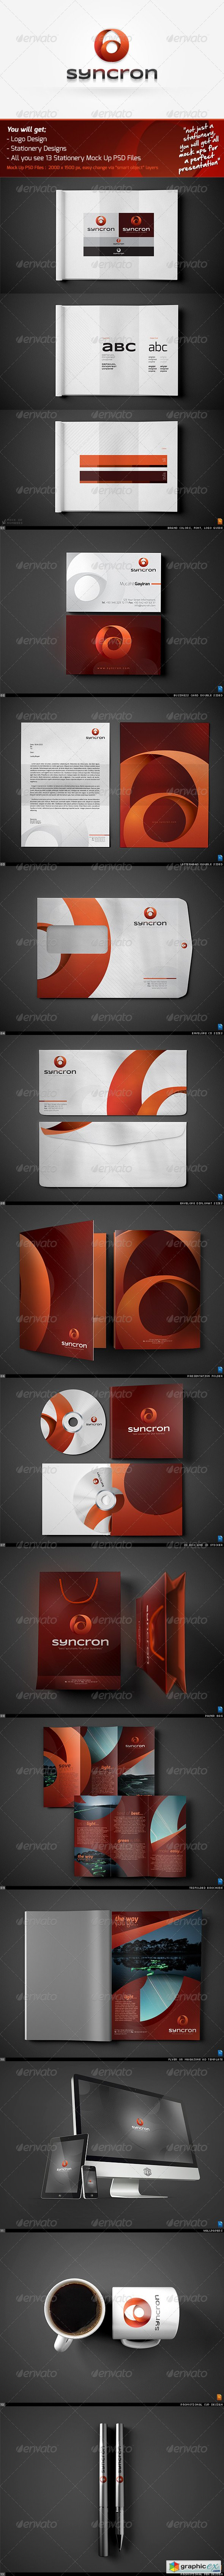 Syncron Modern Corporate Identity v11 2603608